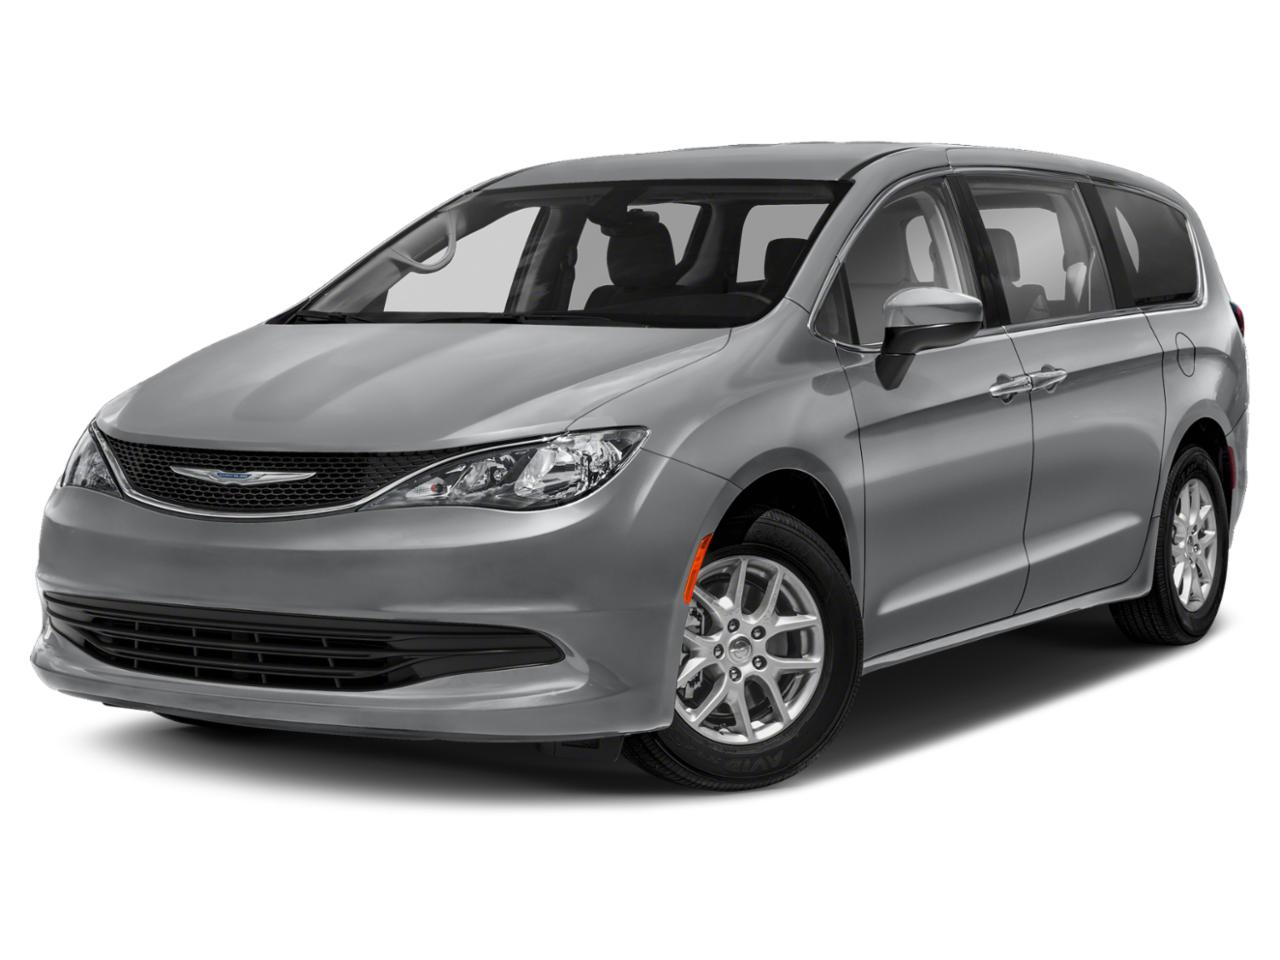 2018 Chrysler Pacifica Vehicle Photo in Akron, OH 44303